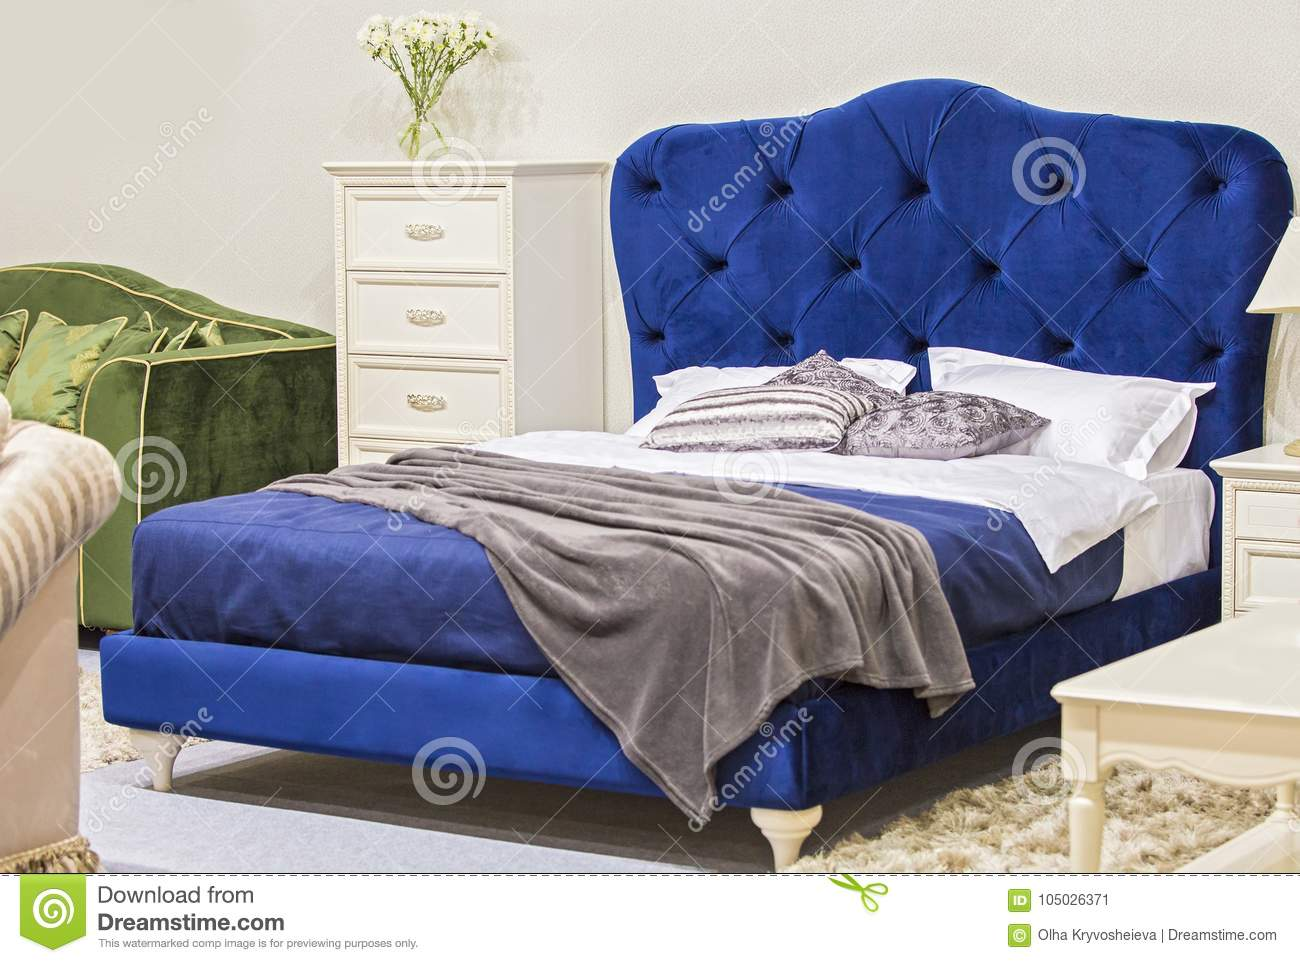 Luxury Bedroom In Antique Style With Blue Velvet Bed And White Nightstand Stock Image Image Of Elegant Bedroom 105026371